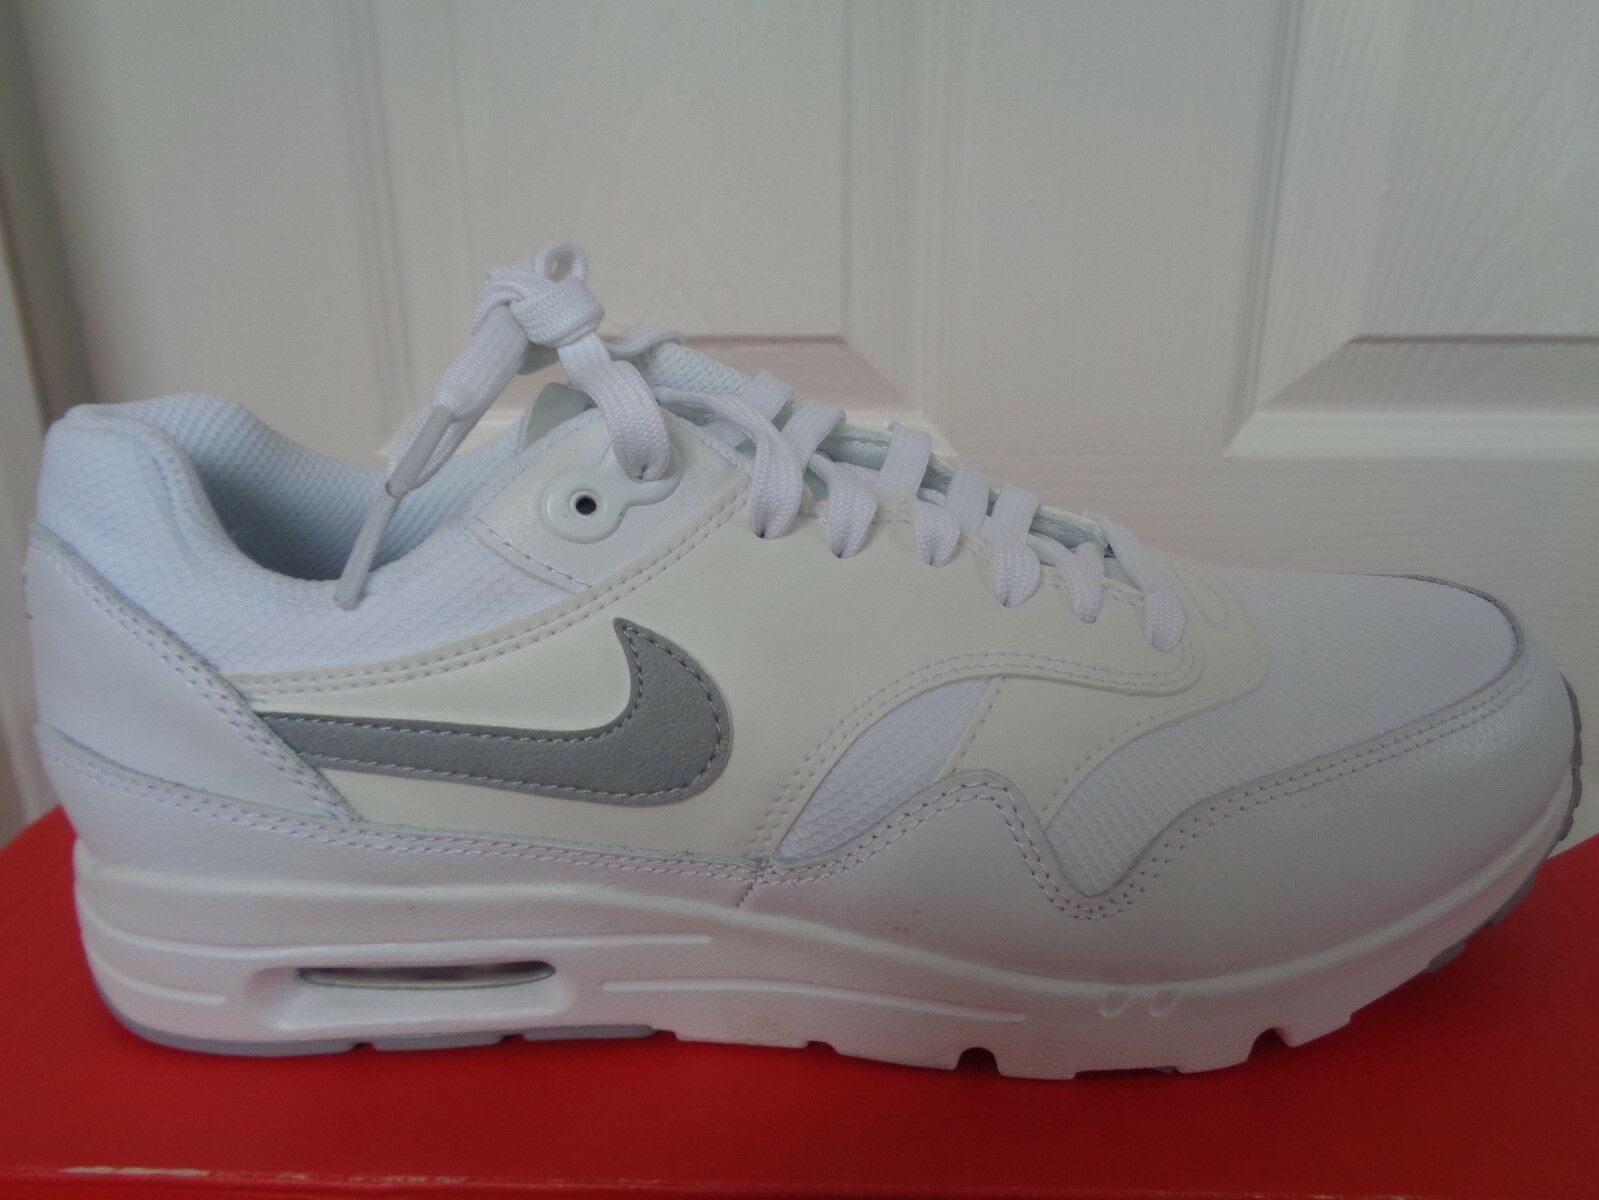 Nike Air max 1 ultra essentials wmns trainers 704993 102 eu 38 us 7 NEW